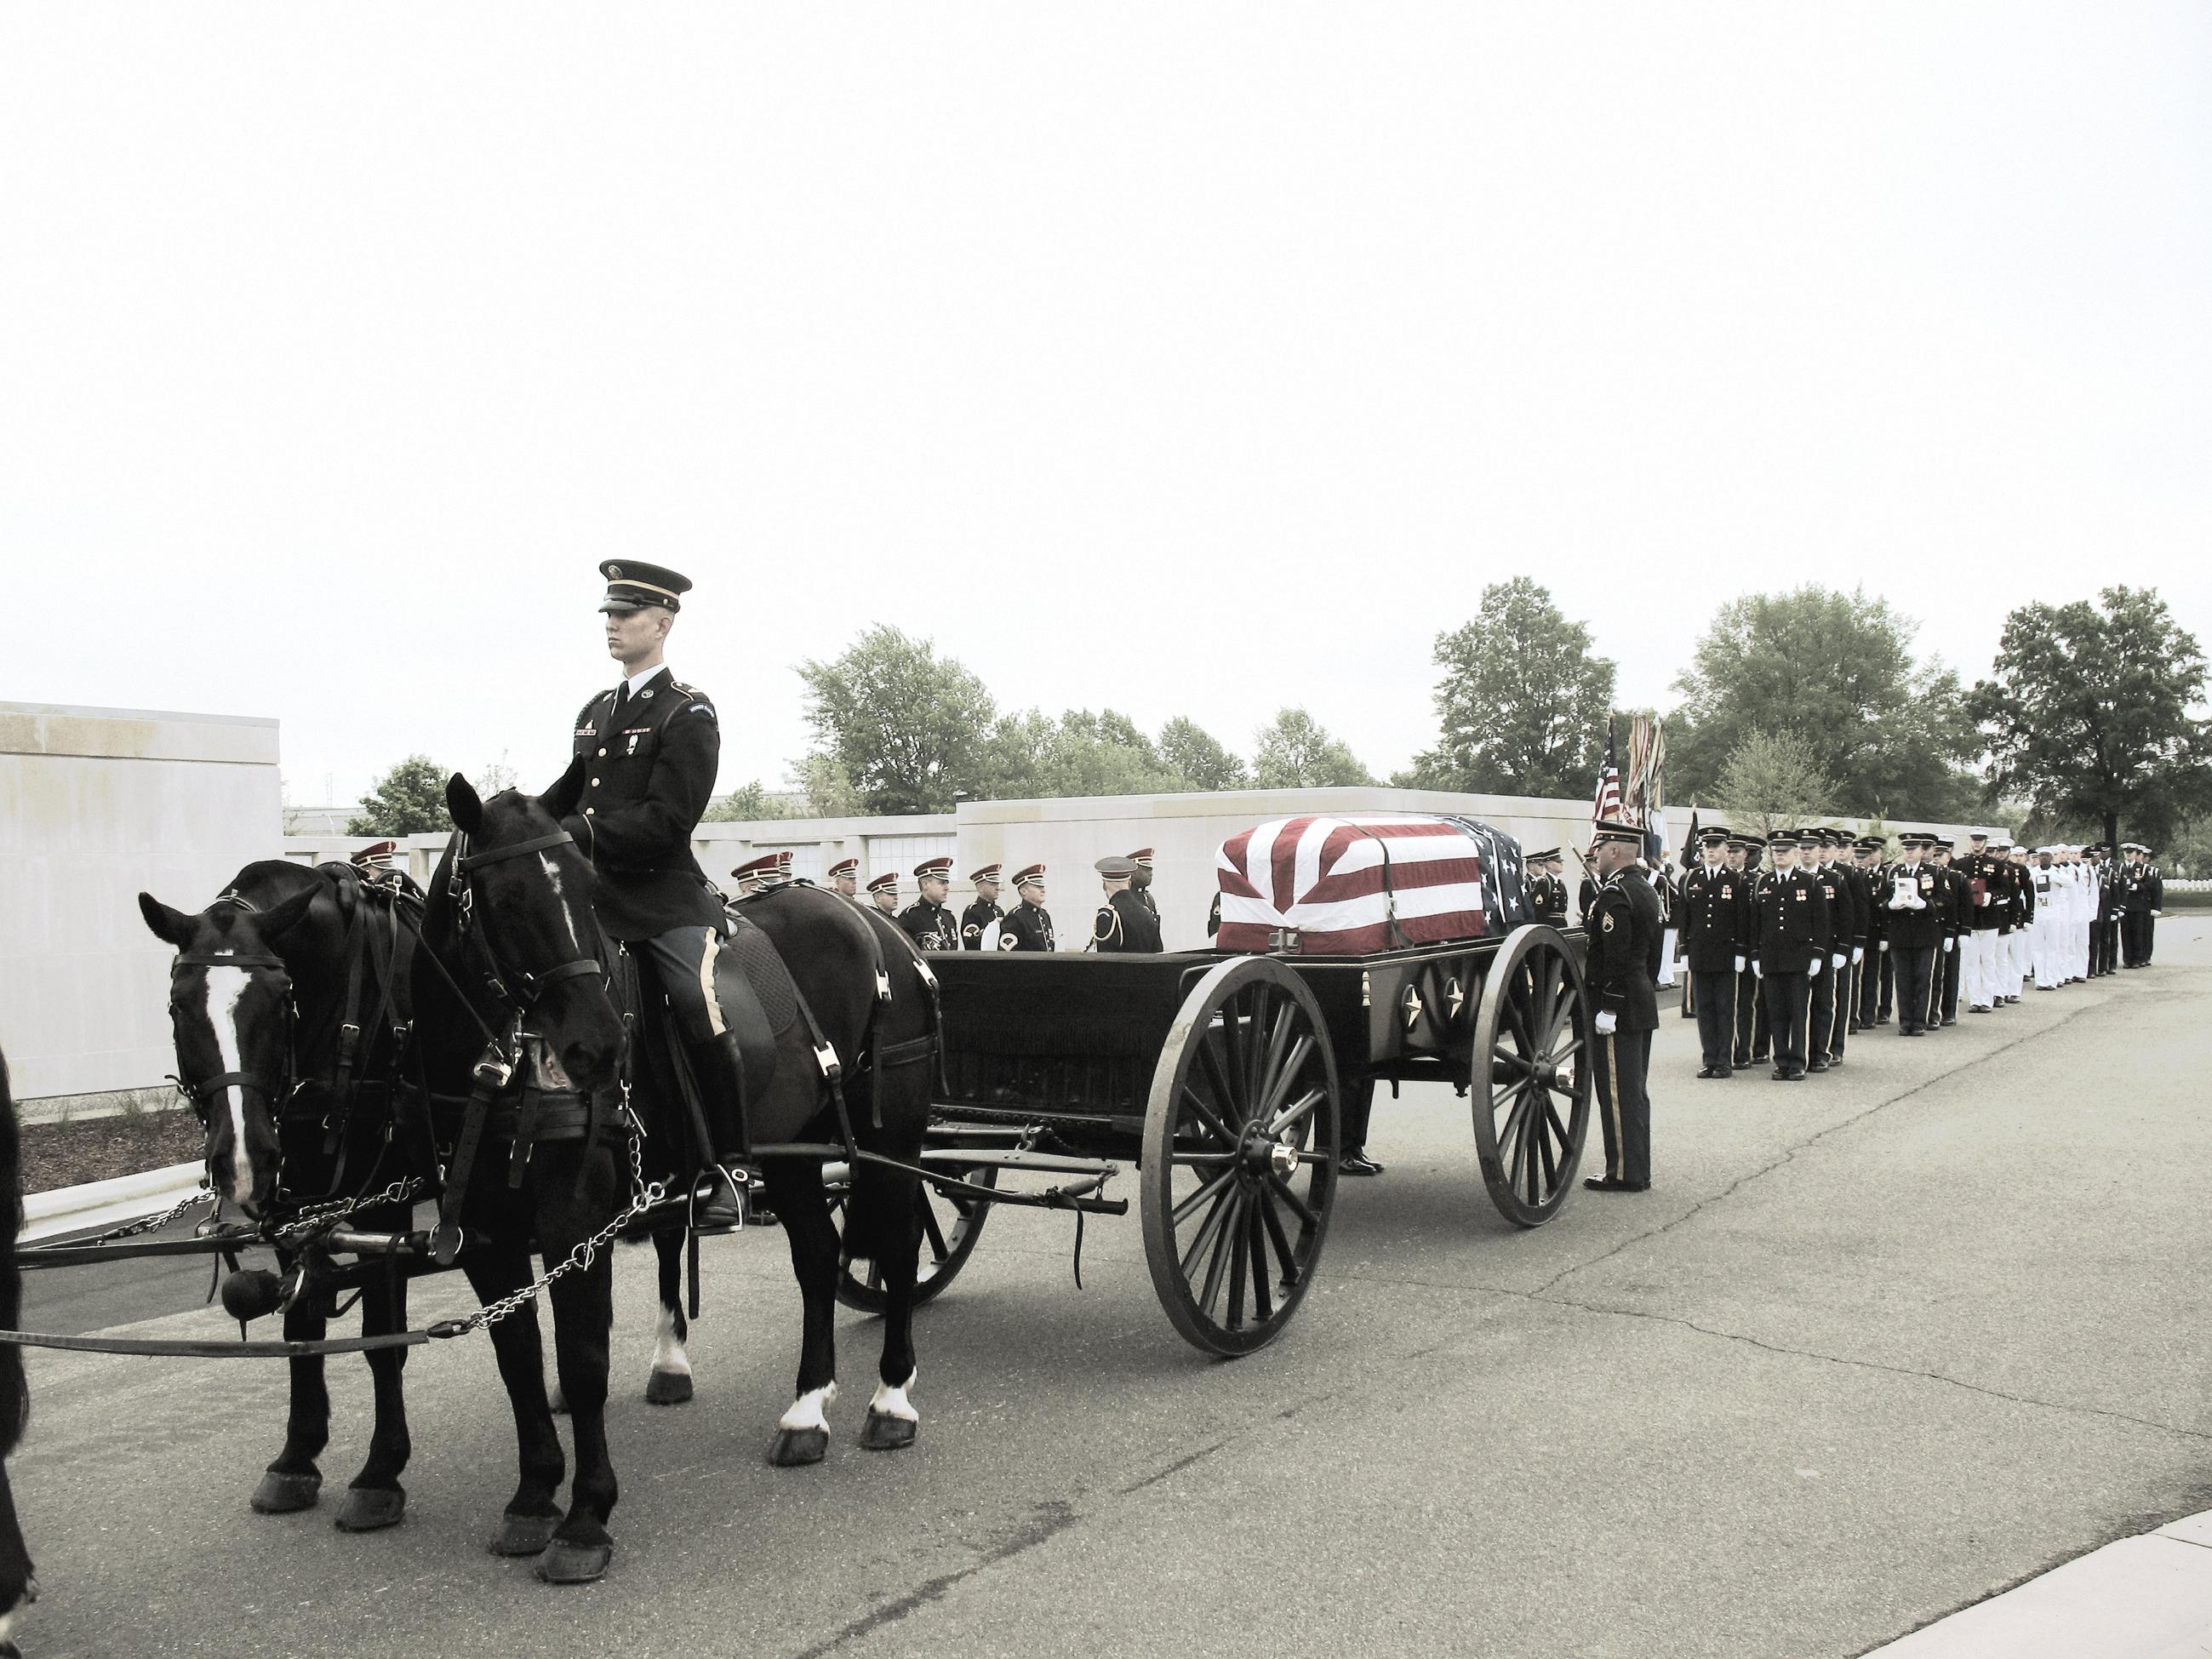 100 Years After Death, Two Civil War Veterans Are Finally Laid to Rest